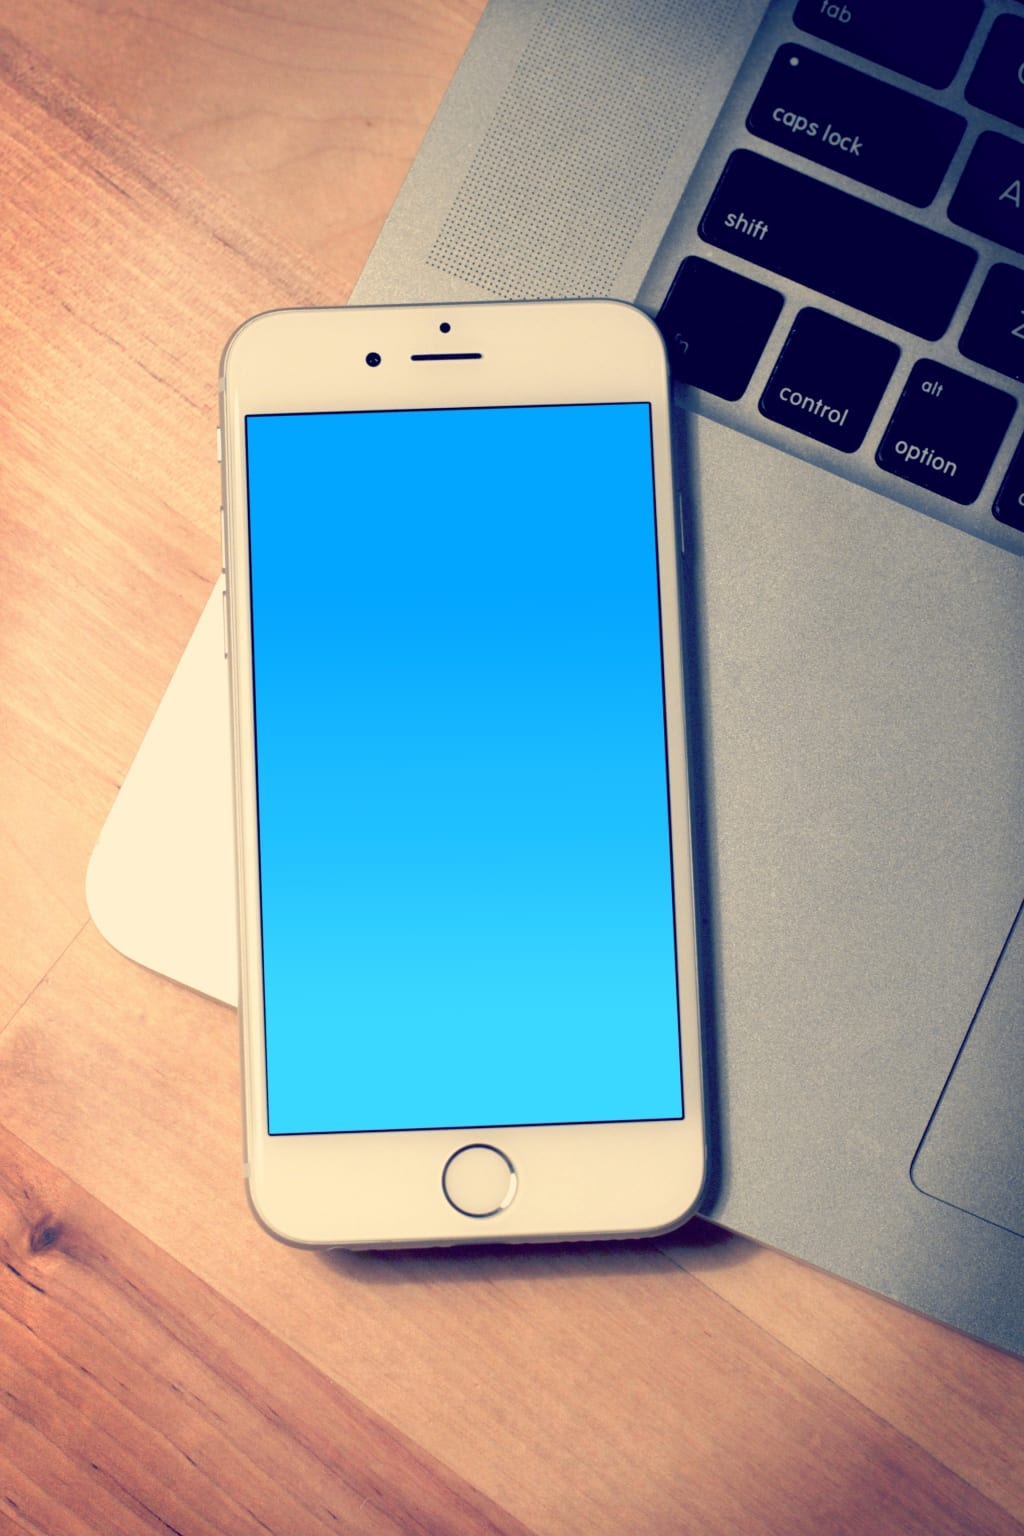 9 Things iPhone Apps Do That You Didn't Know